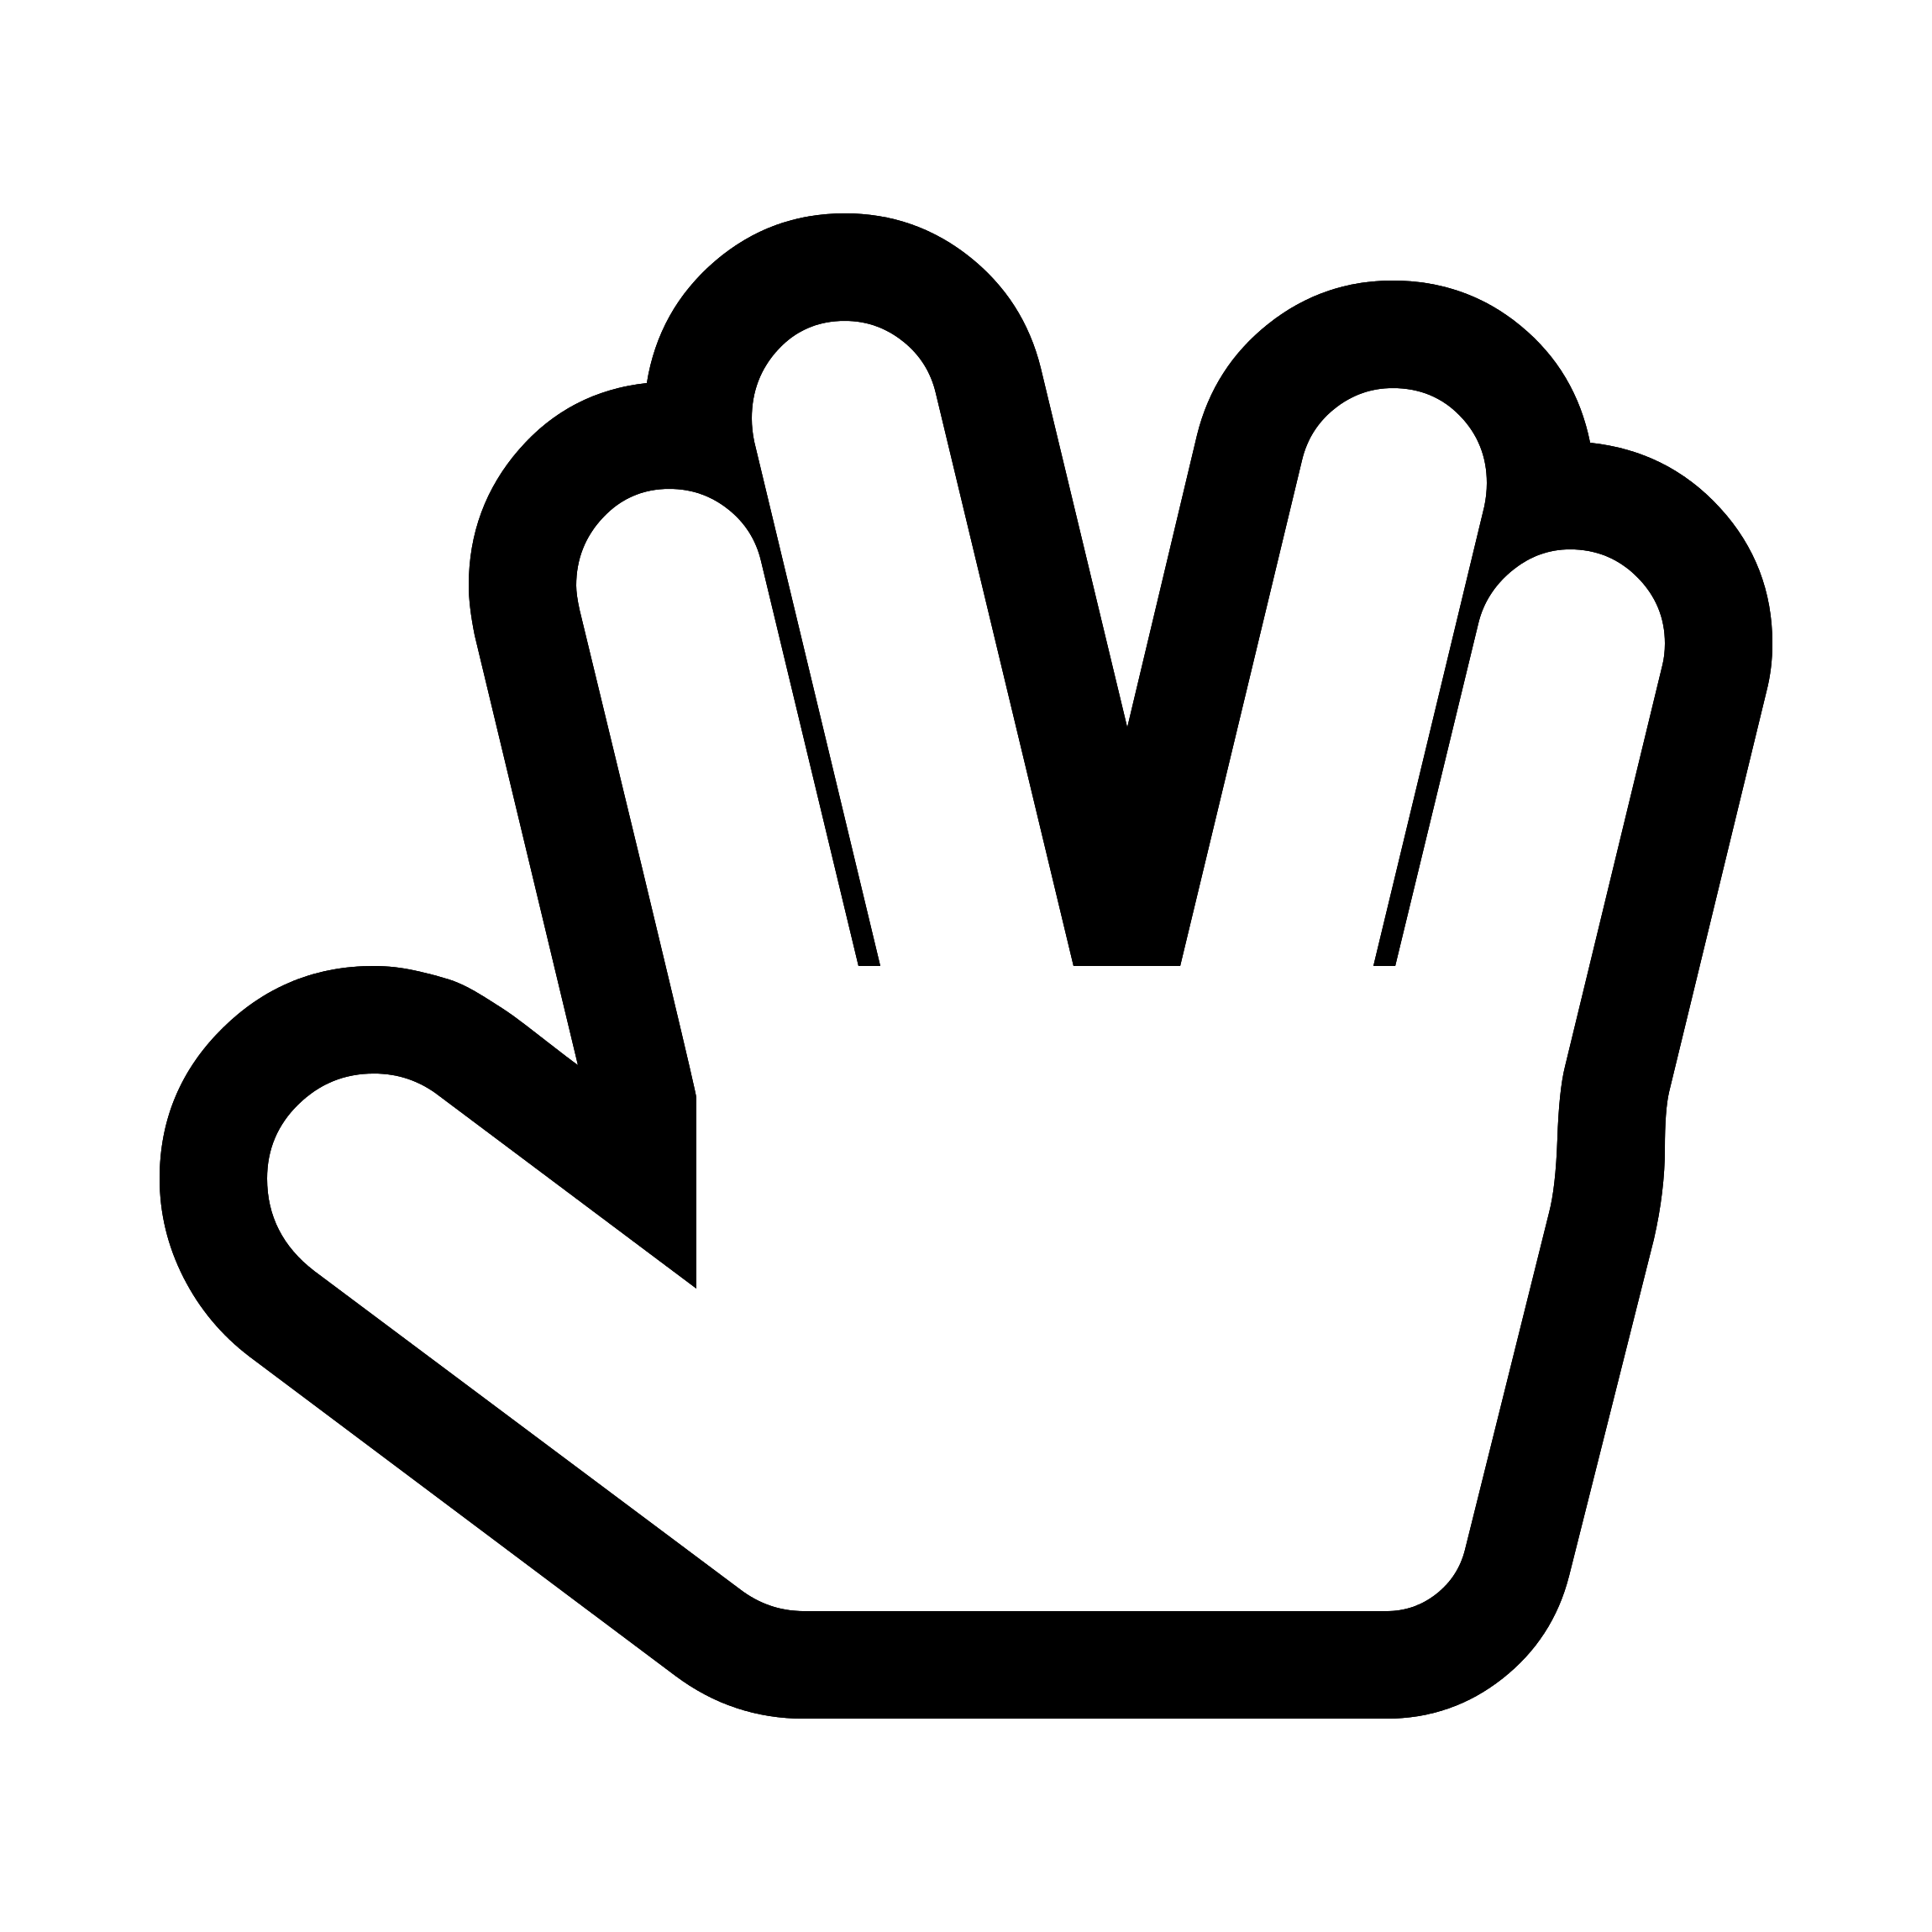 data/images/hand-spock-o.png